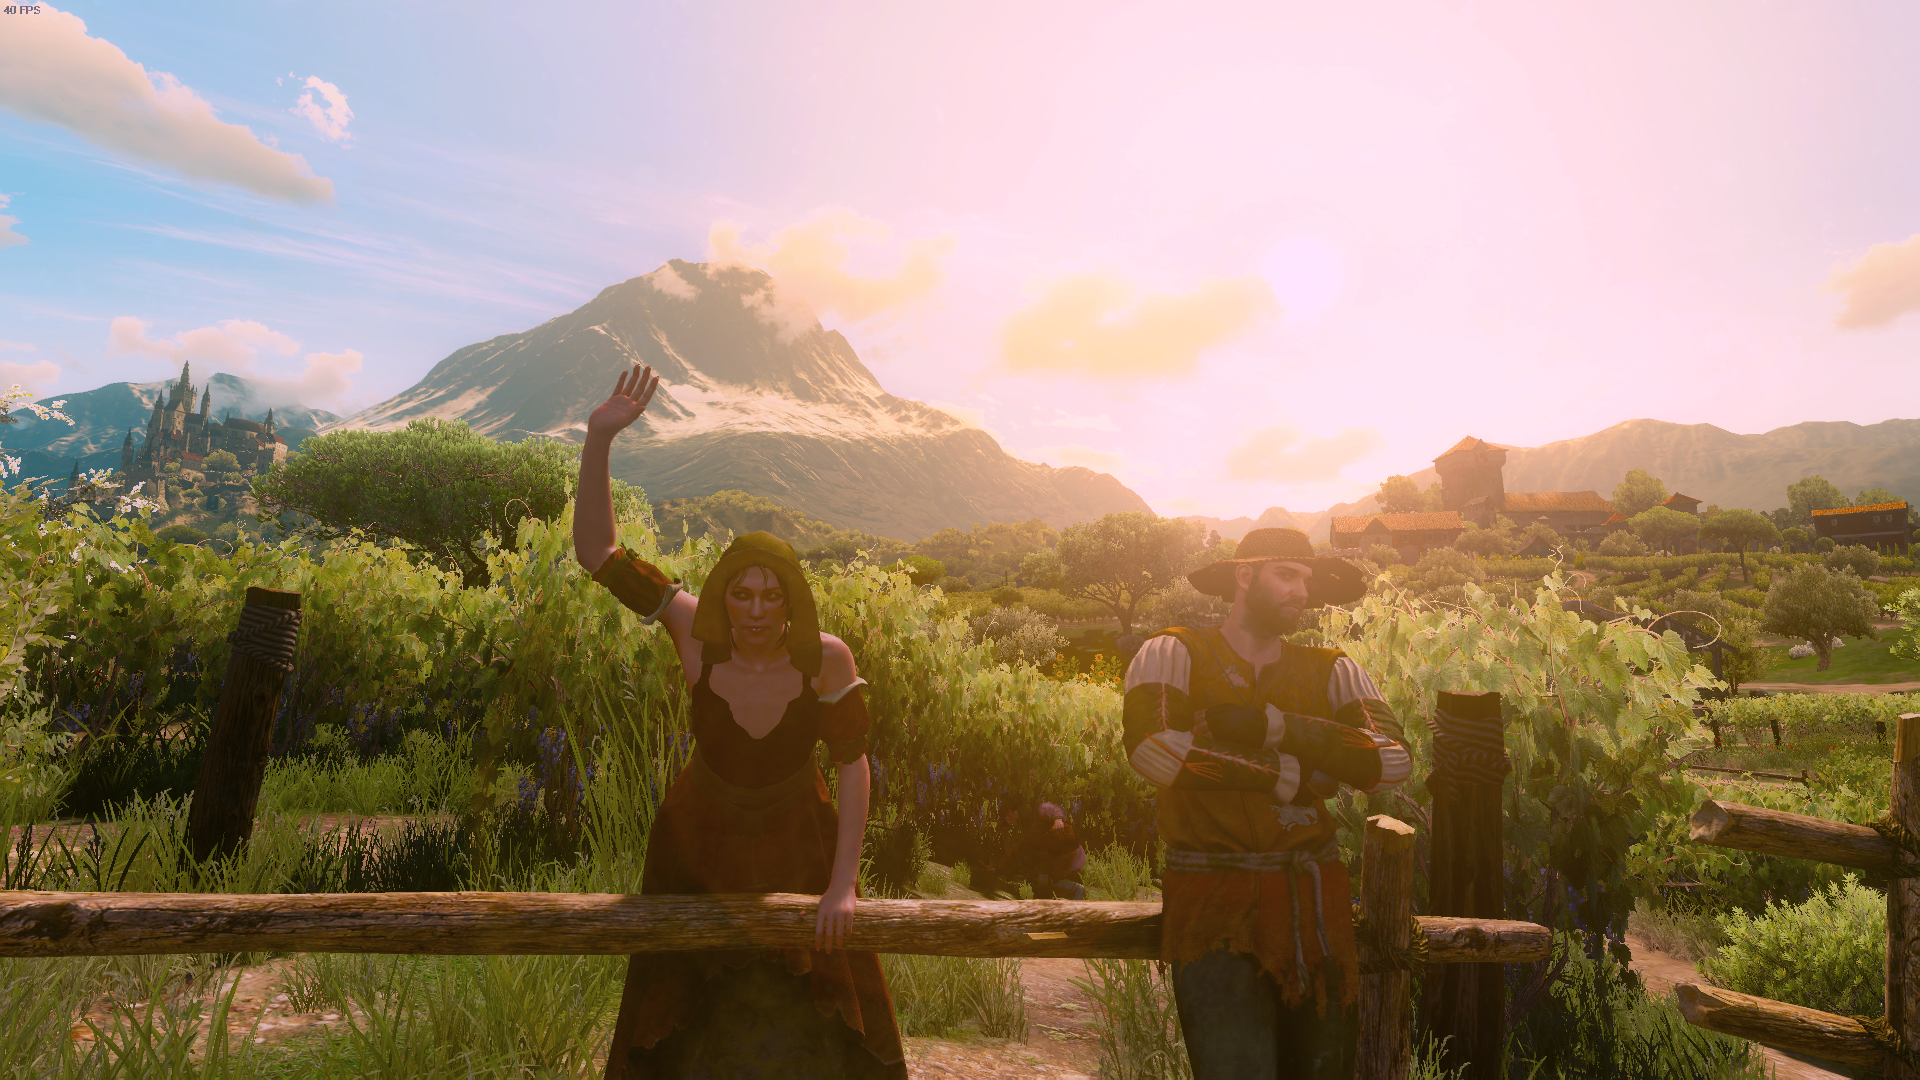 peo - Witcher 3: Wild Hunt, the